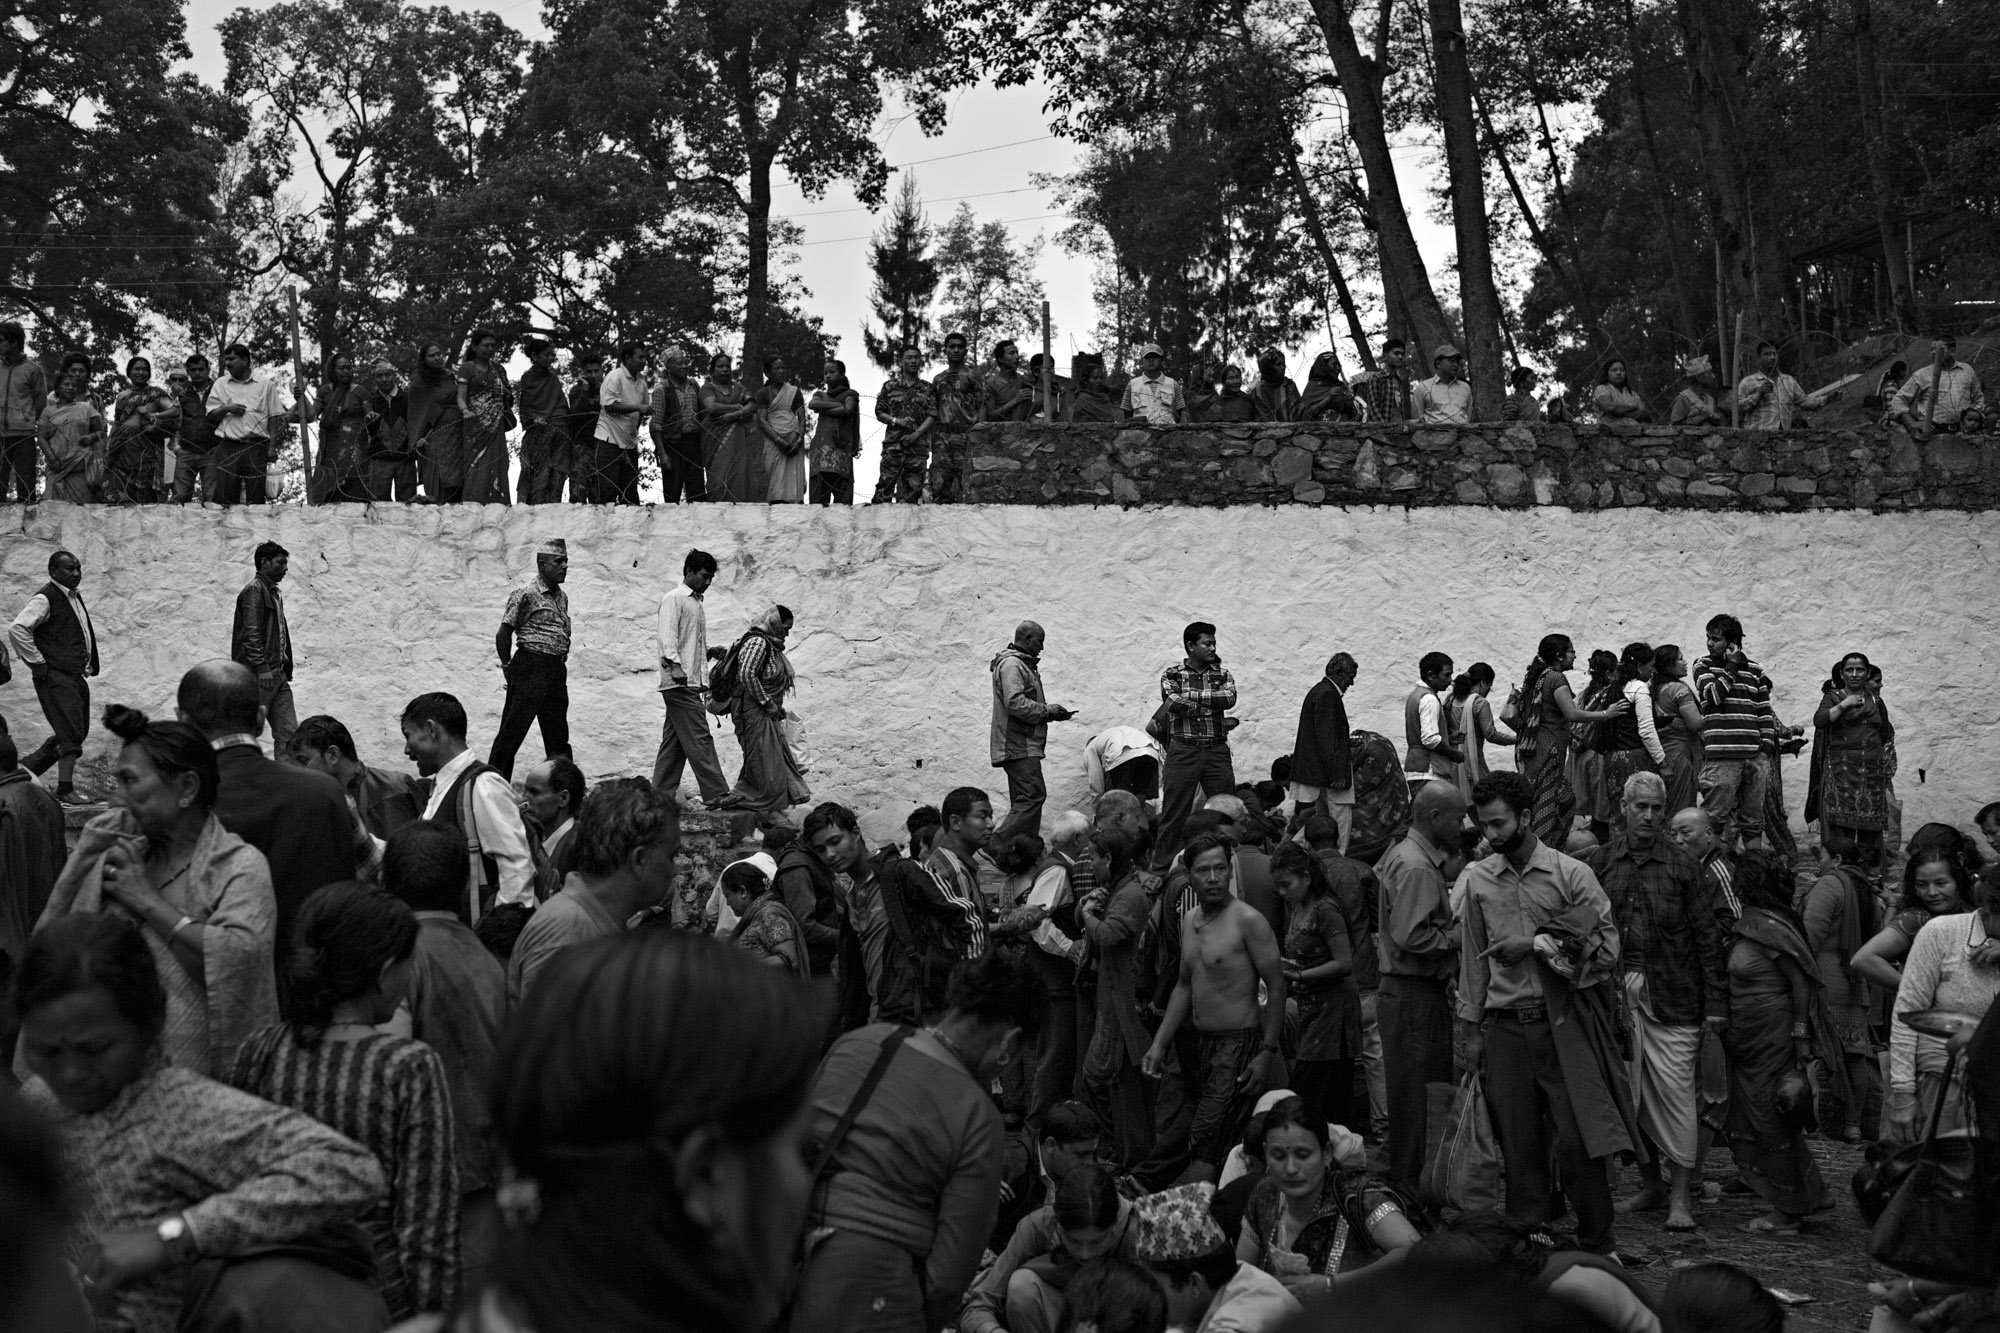 People gather at a sacred area on the outskirts of Kathmandu on Mother's Day, to honor their deceased mothers and grandmothers. This is a special gathering only for those whose mothers have died.